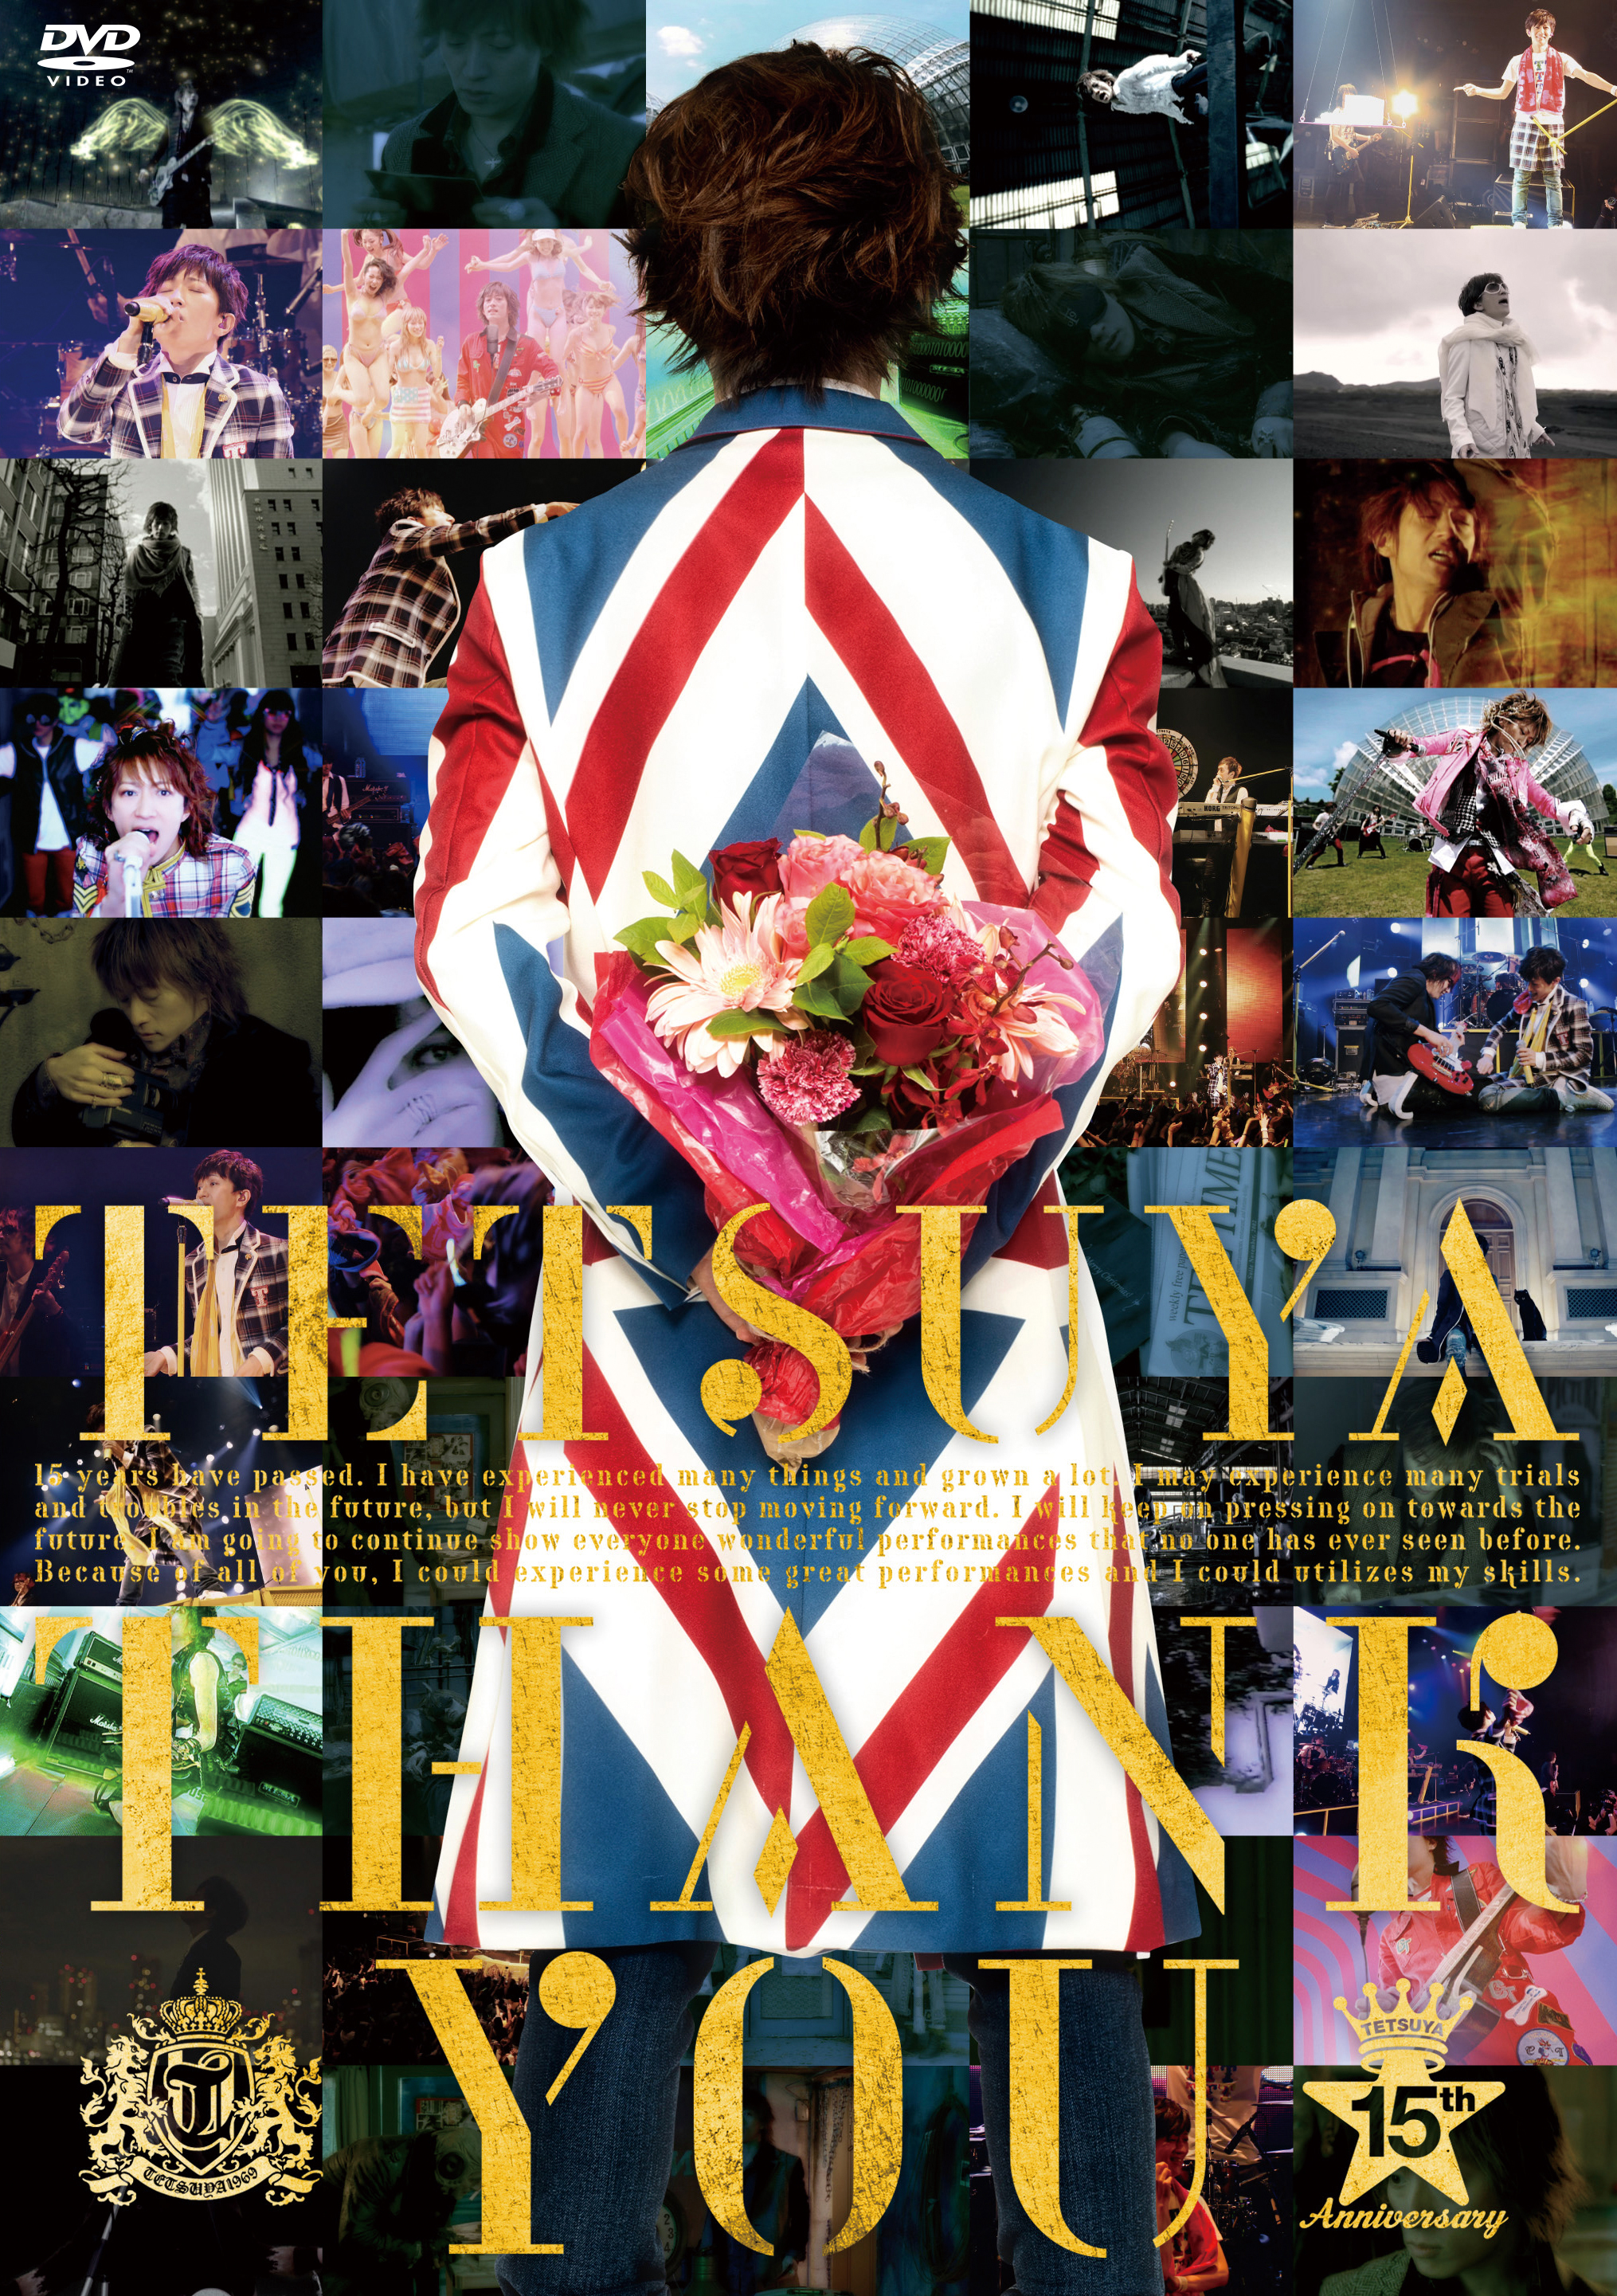 【DVD】THANK YOU+WIZY限定 撮り下ろしPhotoBook 「THANK YOU」(集合写真撮影会:8/26公演)の画像